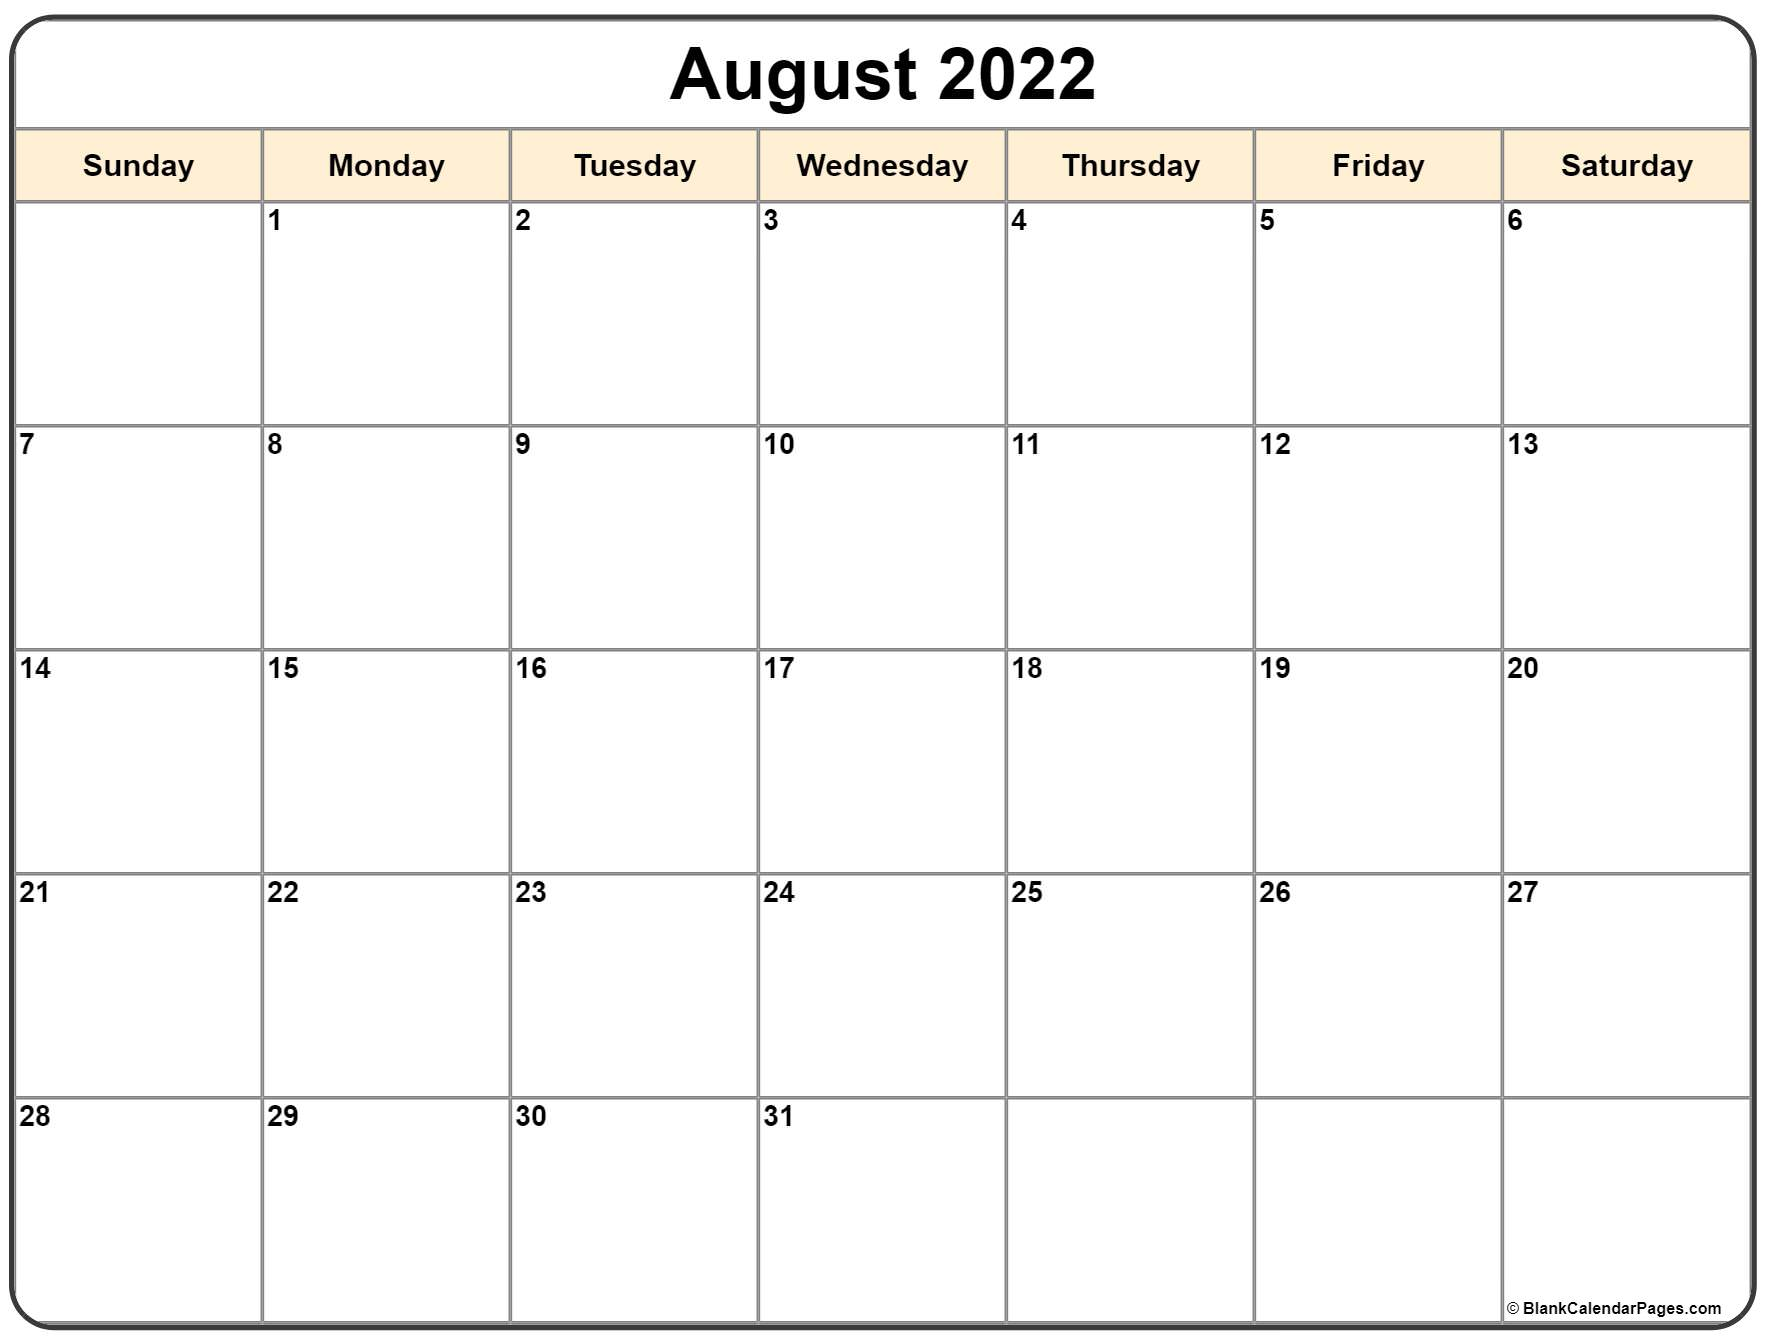 If you have any questions regarding these events, please contact us. August 2022 calendar | free printable monthly calendars